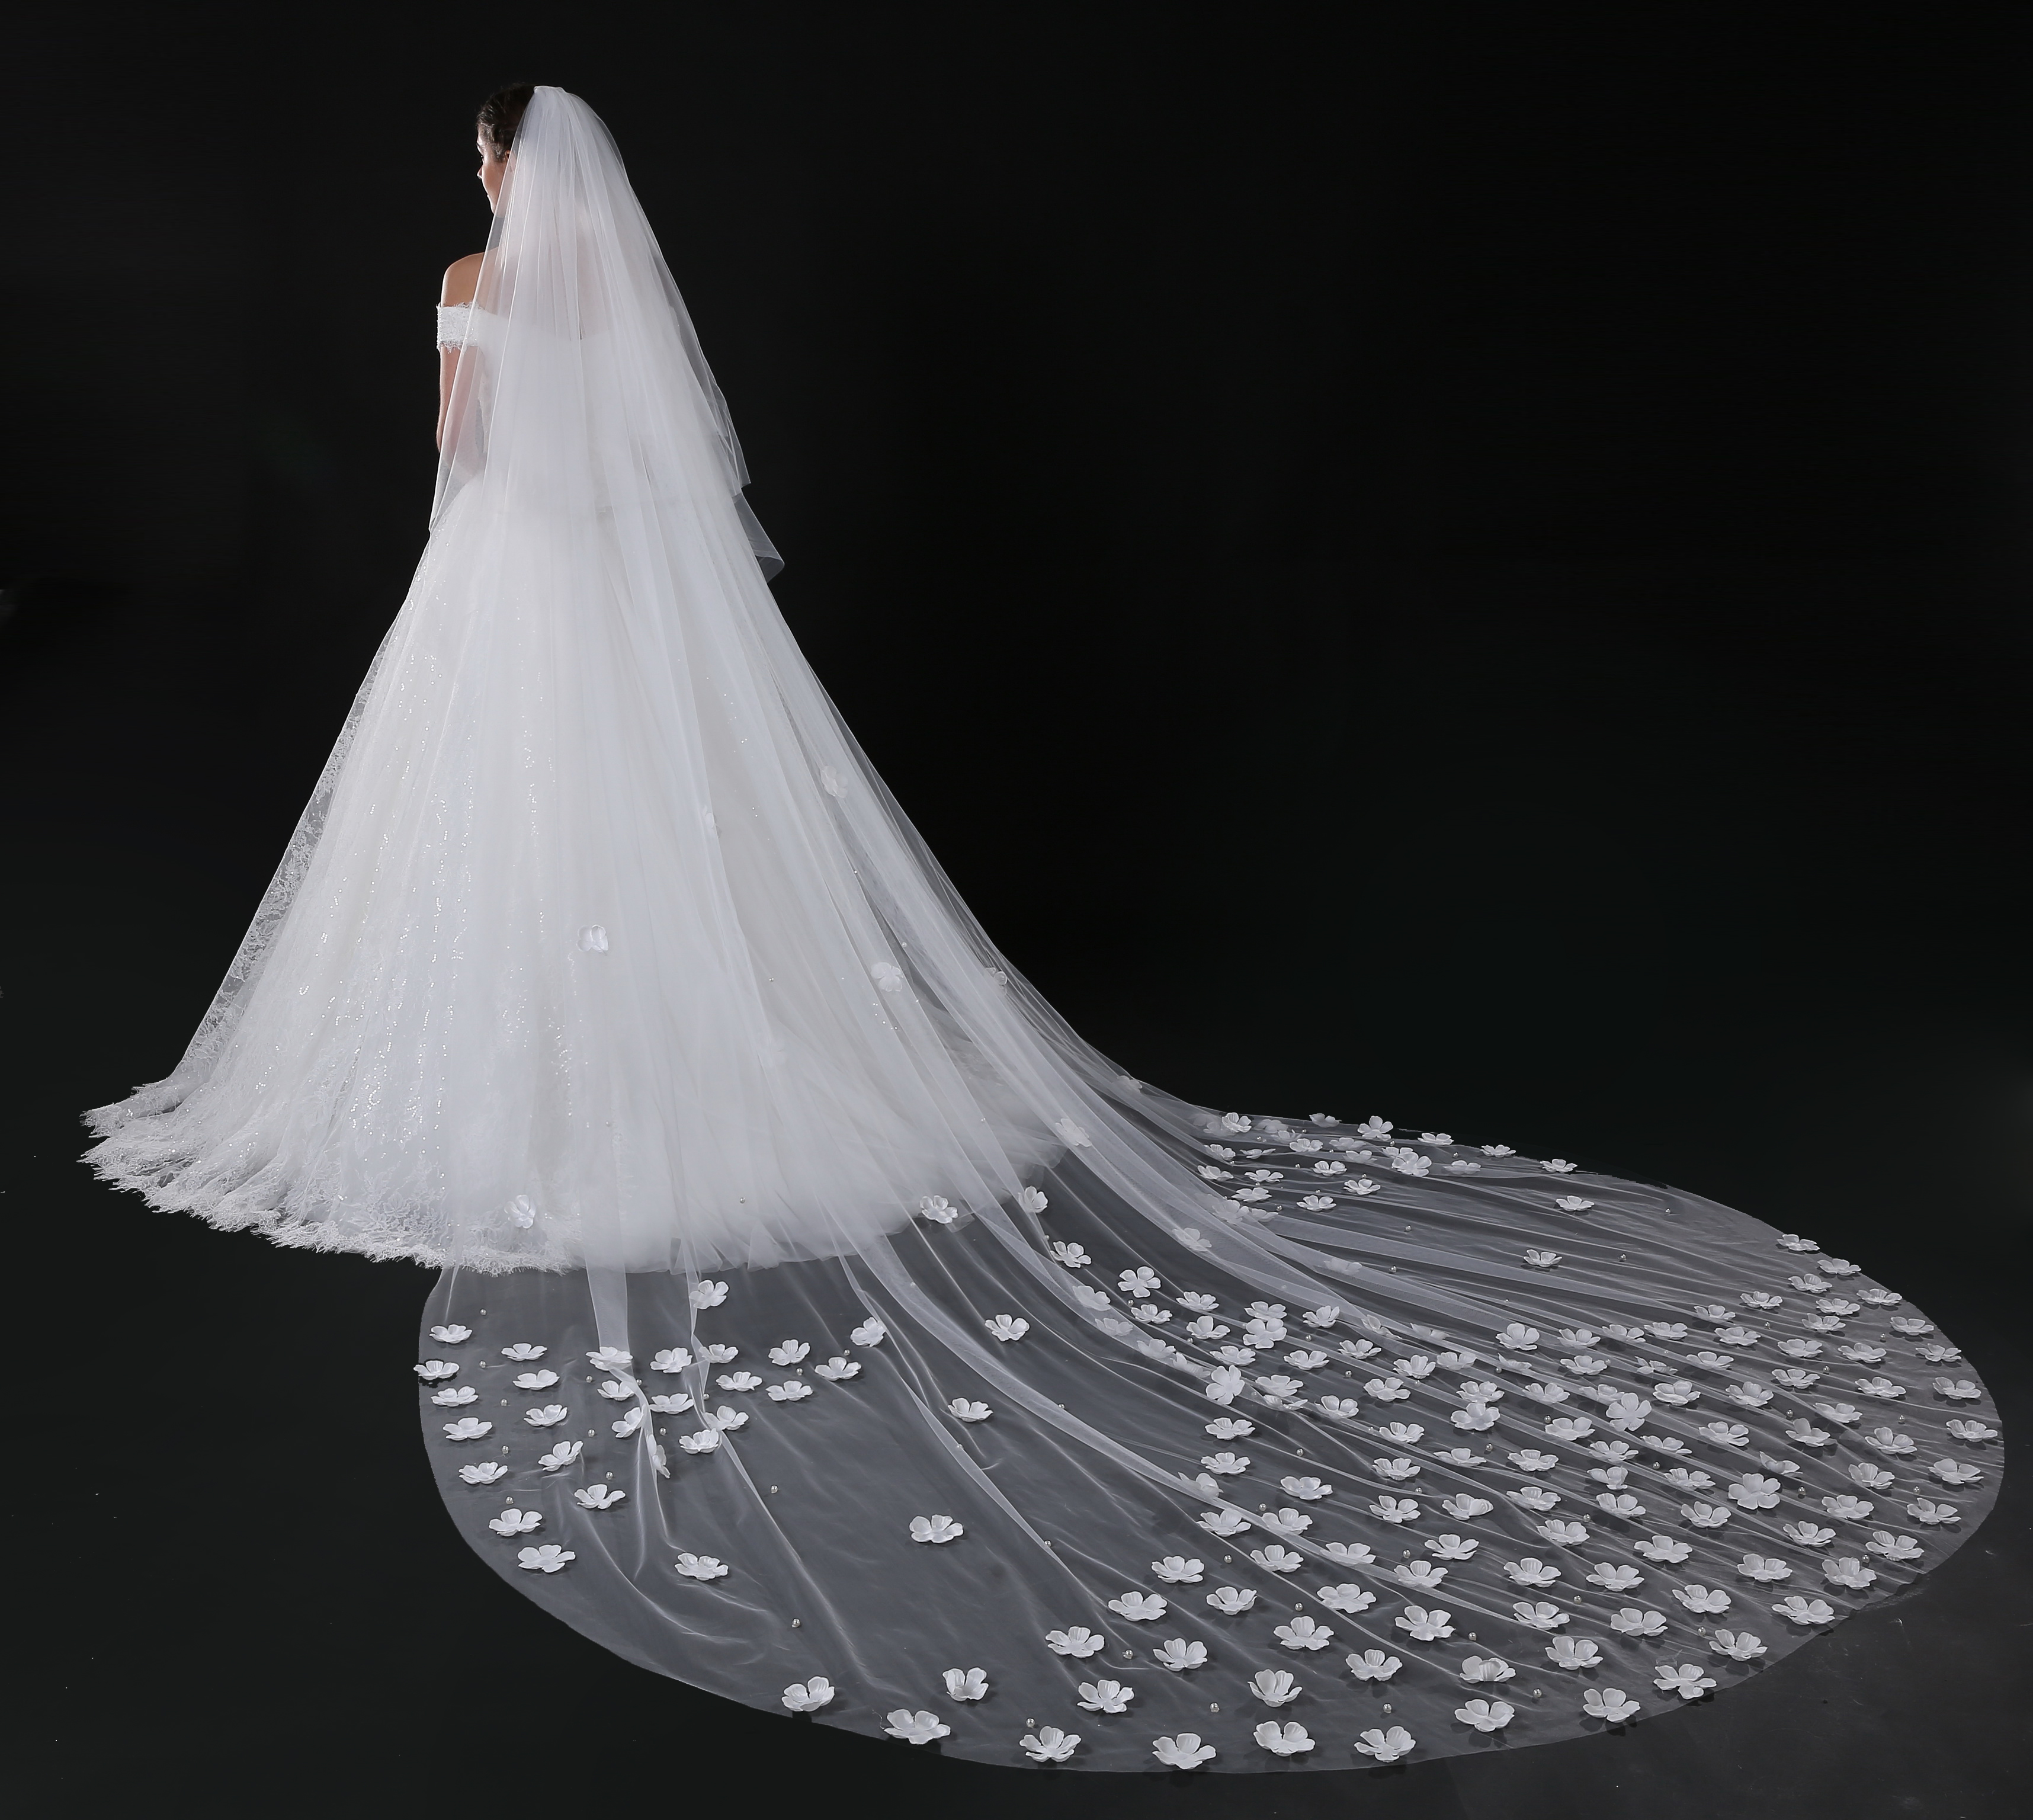 2020  Wedding Veils  5 Meter One-Layer Long Lace Edge Bridal Veil with Comb Wedding Accessories Bride  Wedding Veil